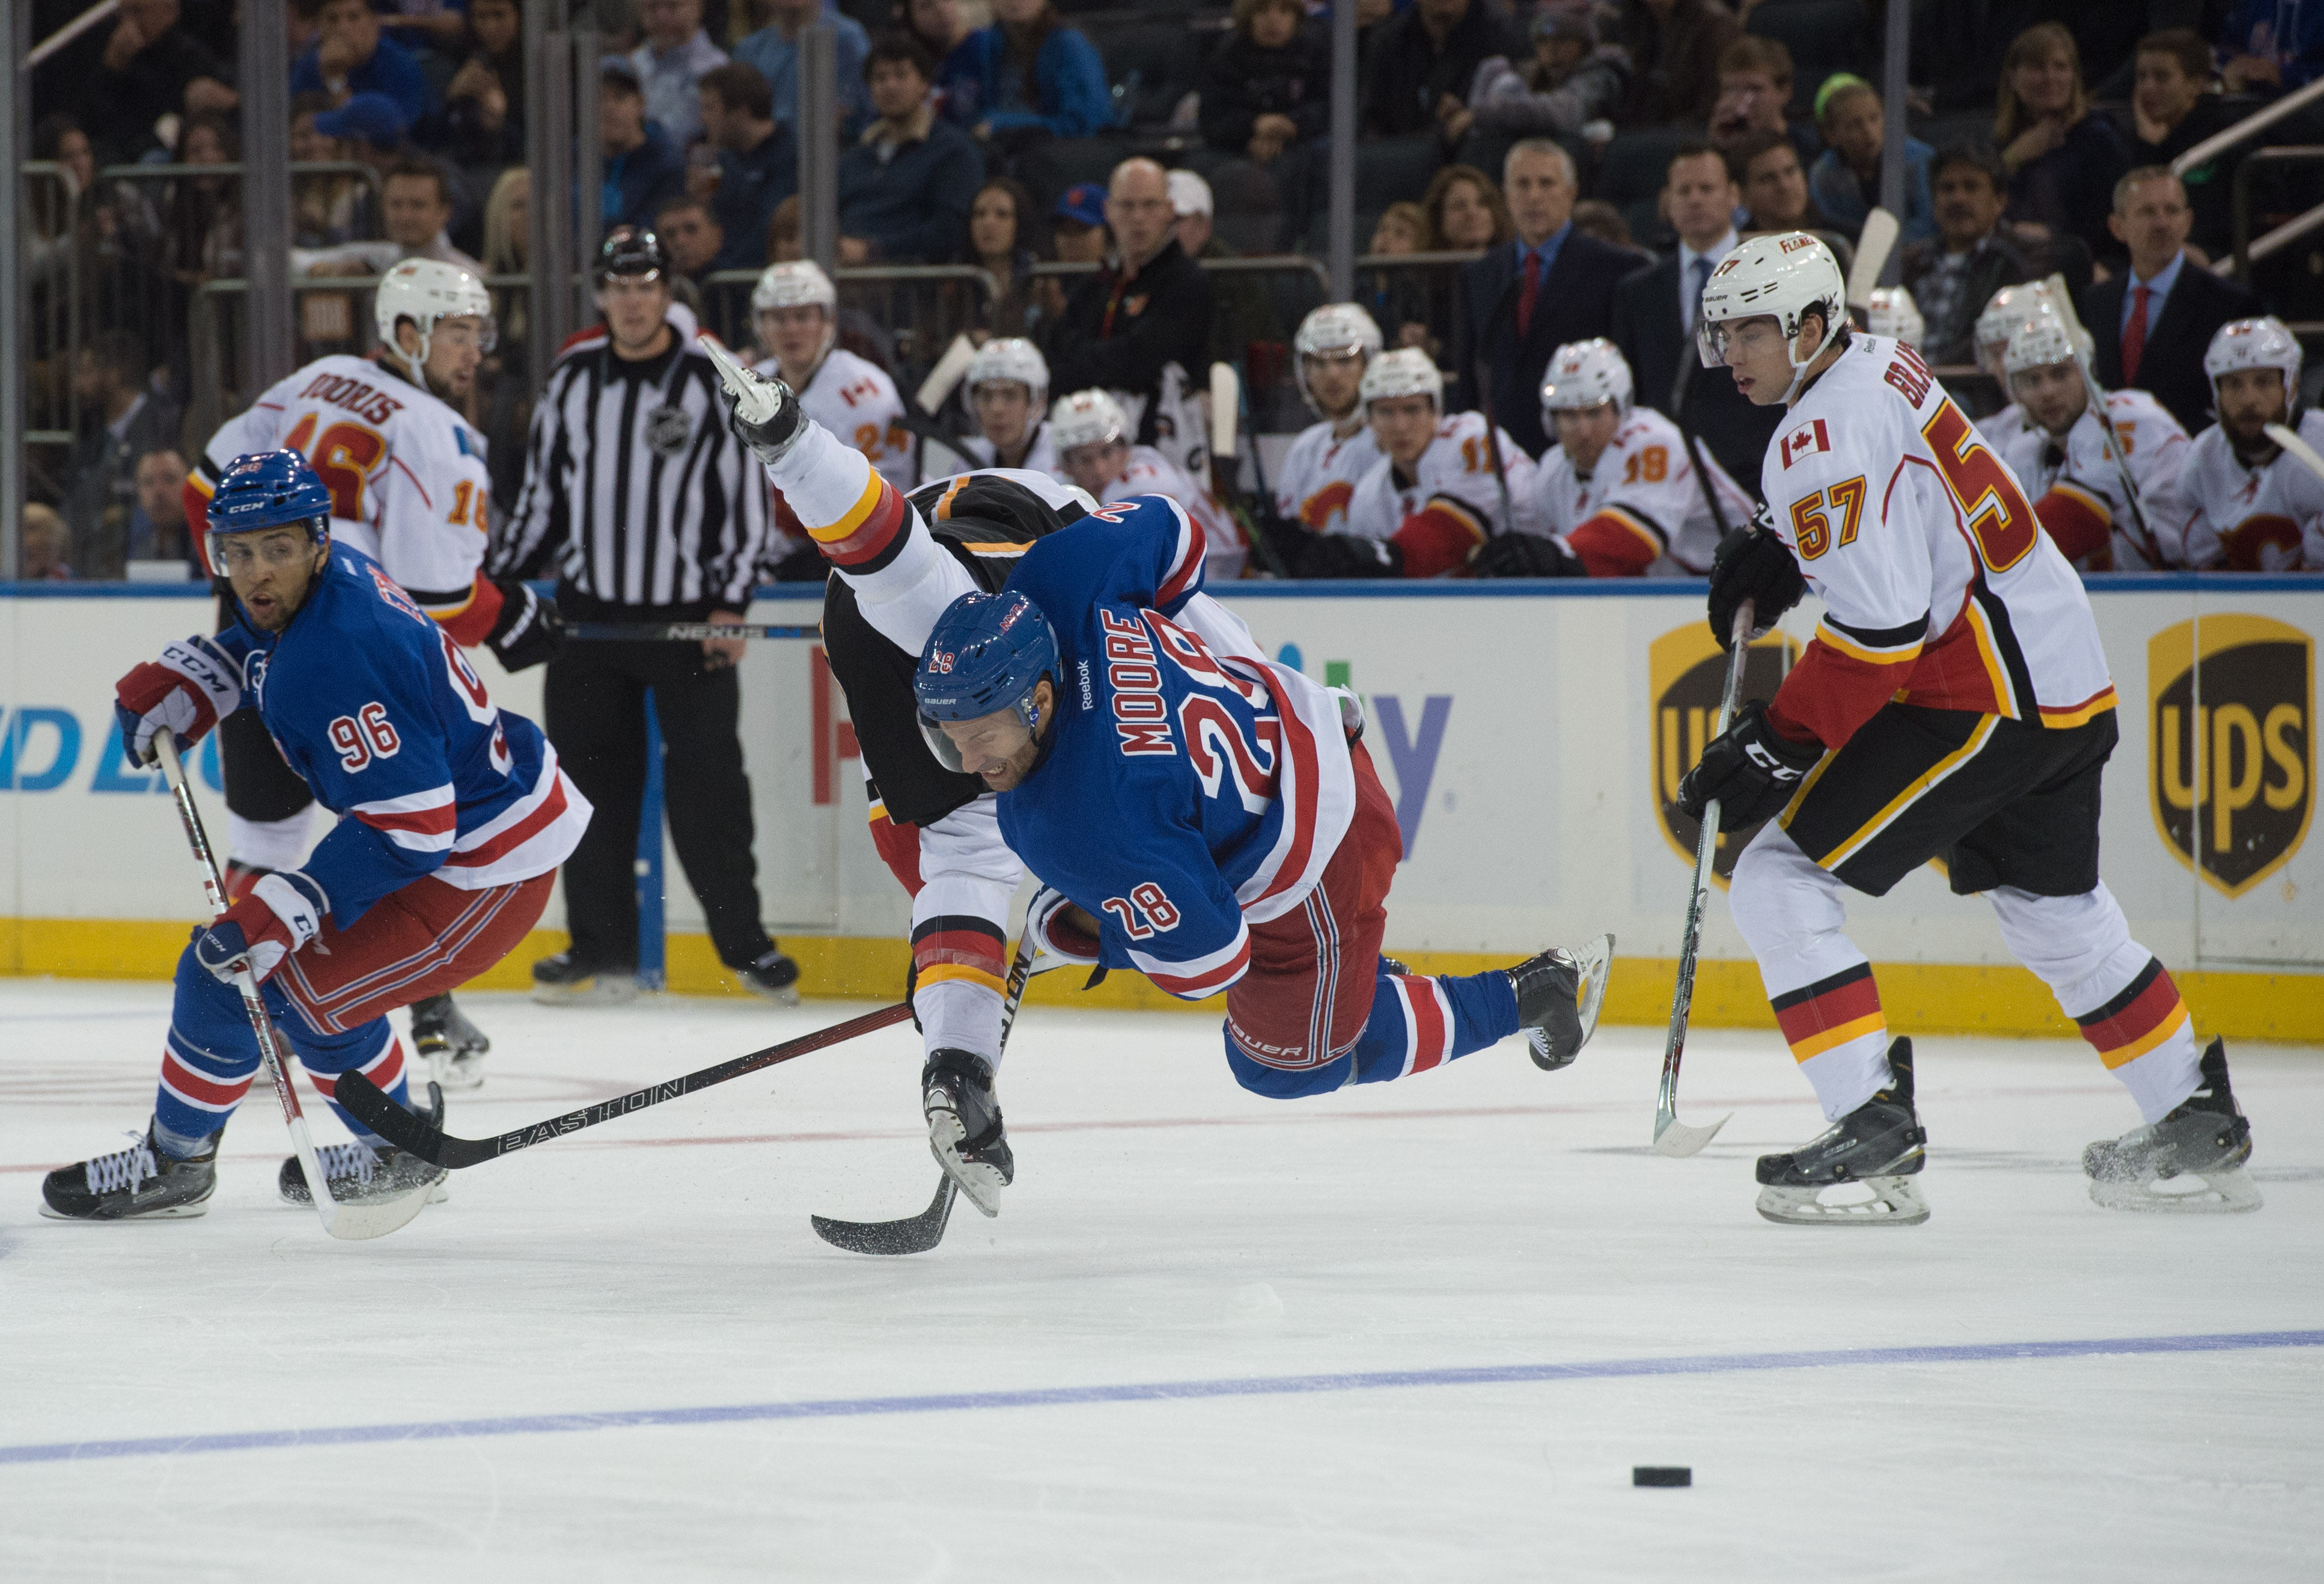 New York Rangers right wing Emerson Etem, left, and Calgary Flames center Derek Grant, right, look on as Flames center Sam Bennett, center left, and New York Rangers center Dominic Moore, center right, collide in the second  period of an NHL hockey game a